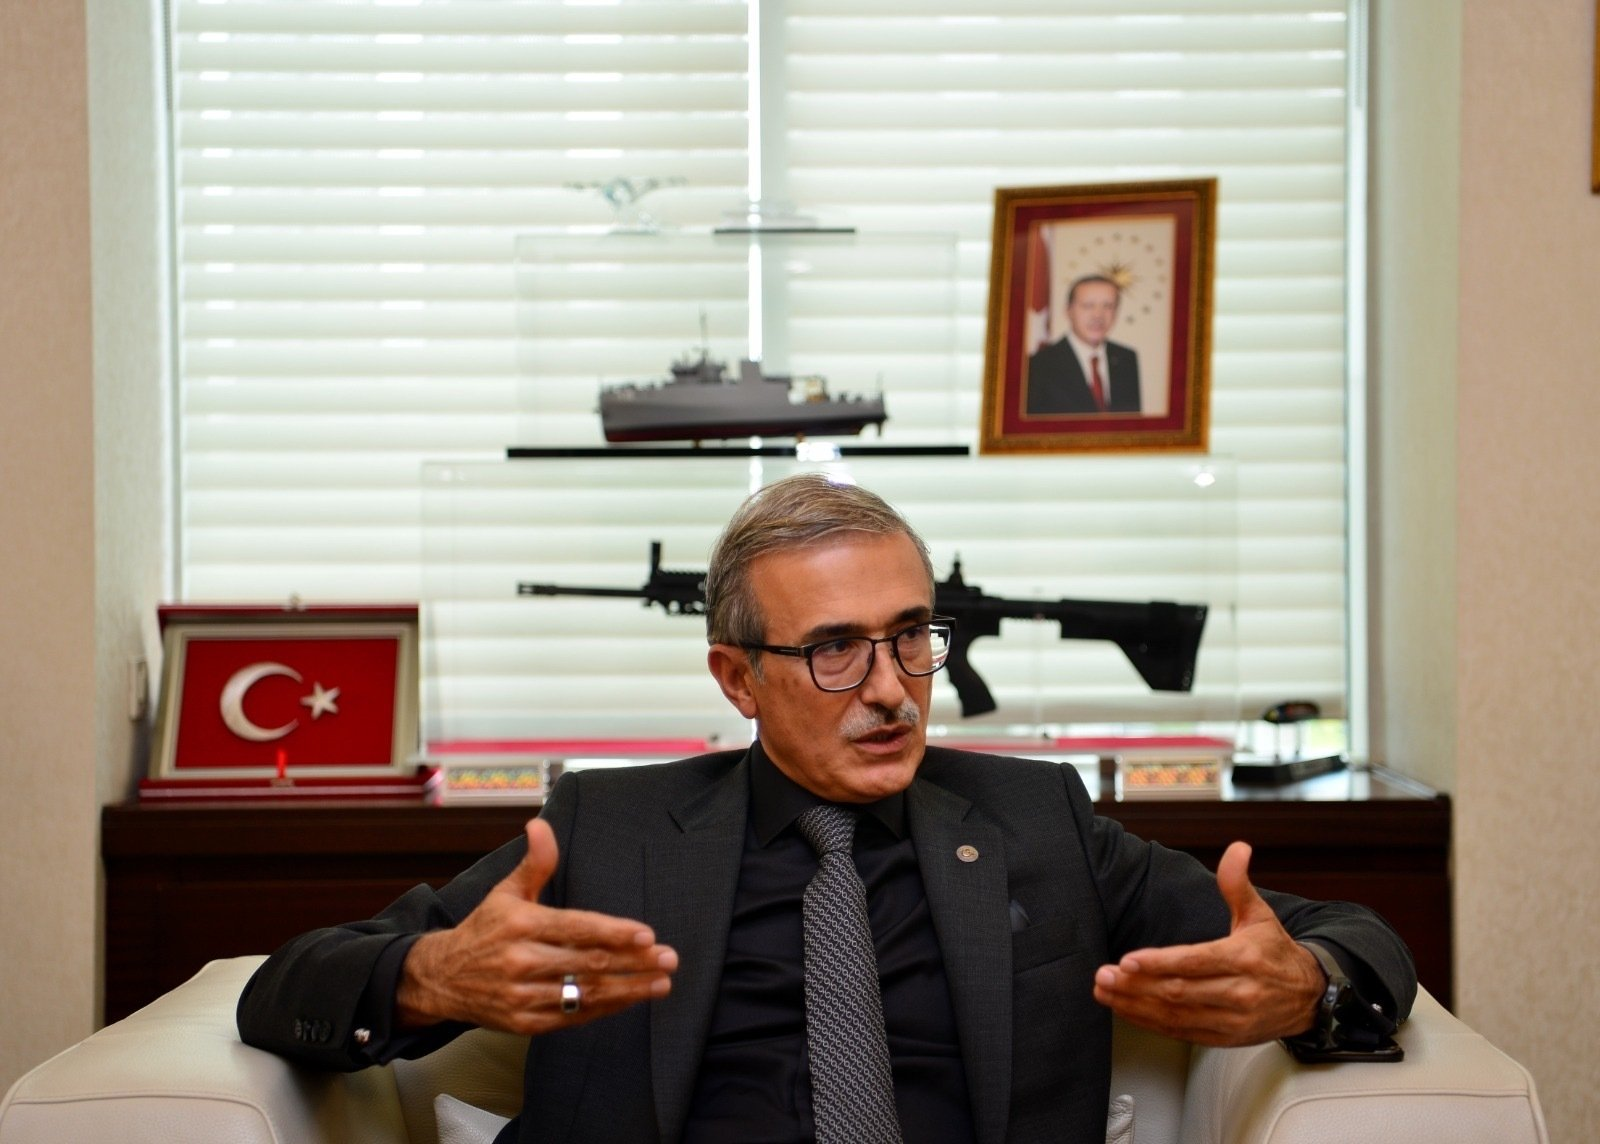 Presidency of Defense Industries (SSB) Chairperson Ismail Demir speaks during an interview with Daily Sabah at the SSB in Ankara, Turkey, June 24, 2021. (Courtesy of the SSB)